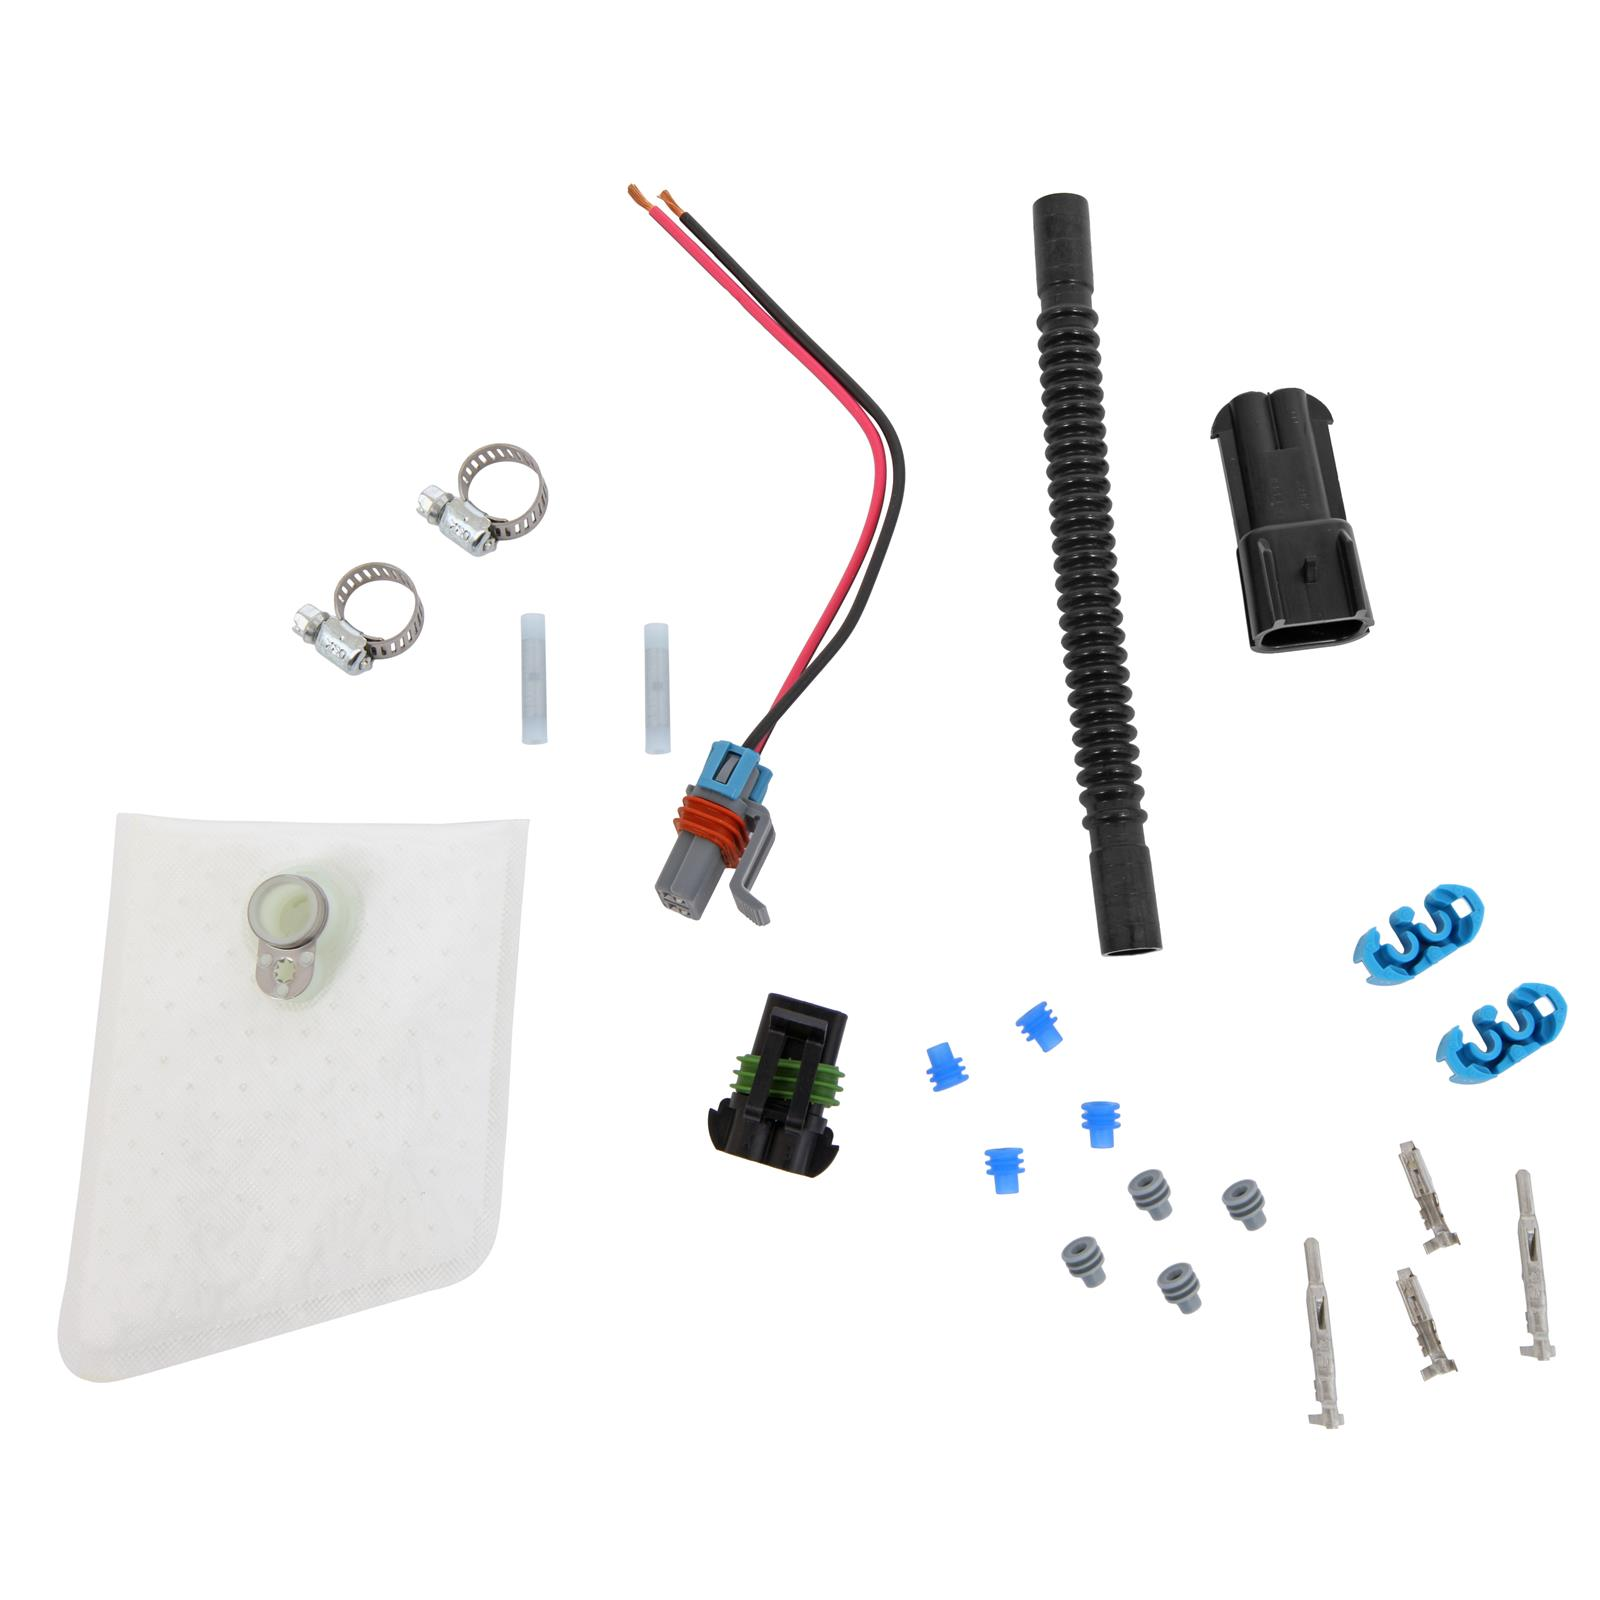 Walbro 400-1113 Fuel Pump Installation Kit